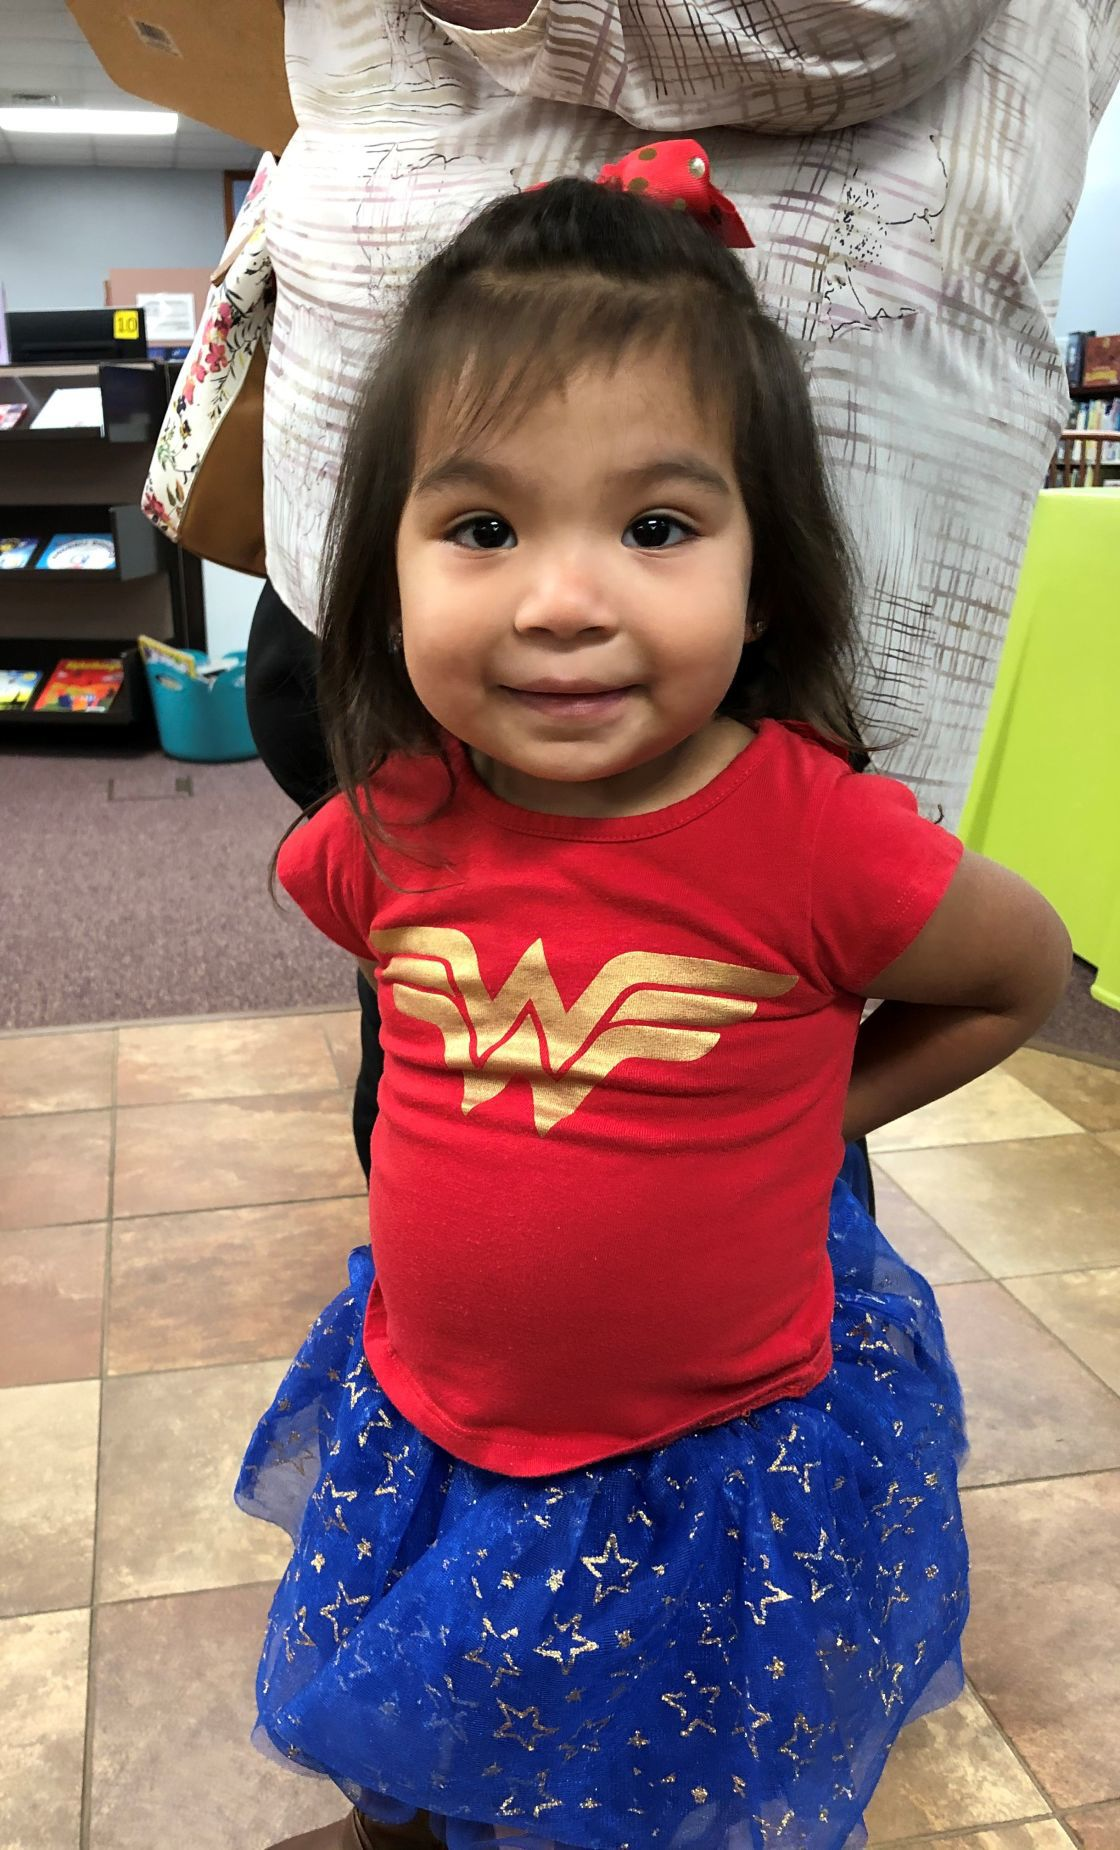 Wonder Woman at the library